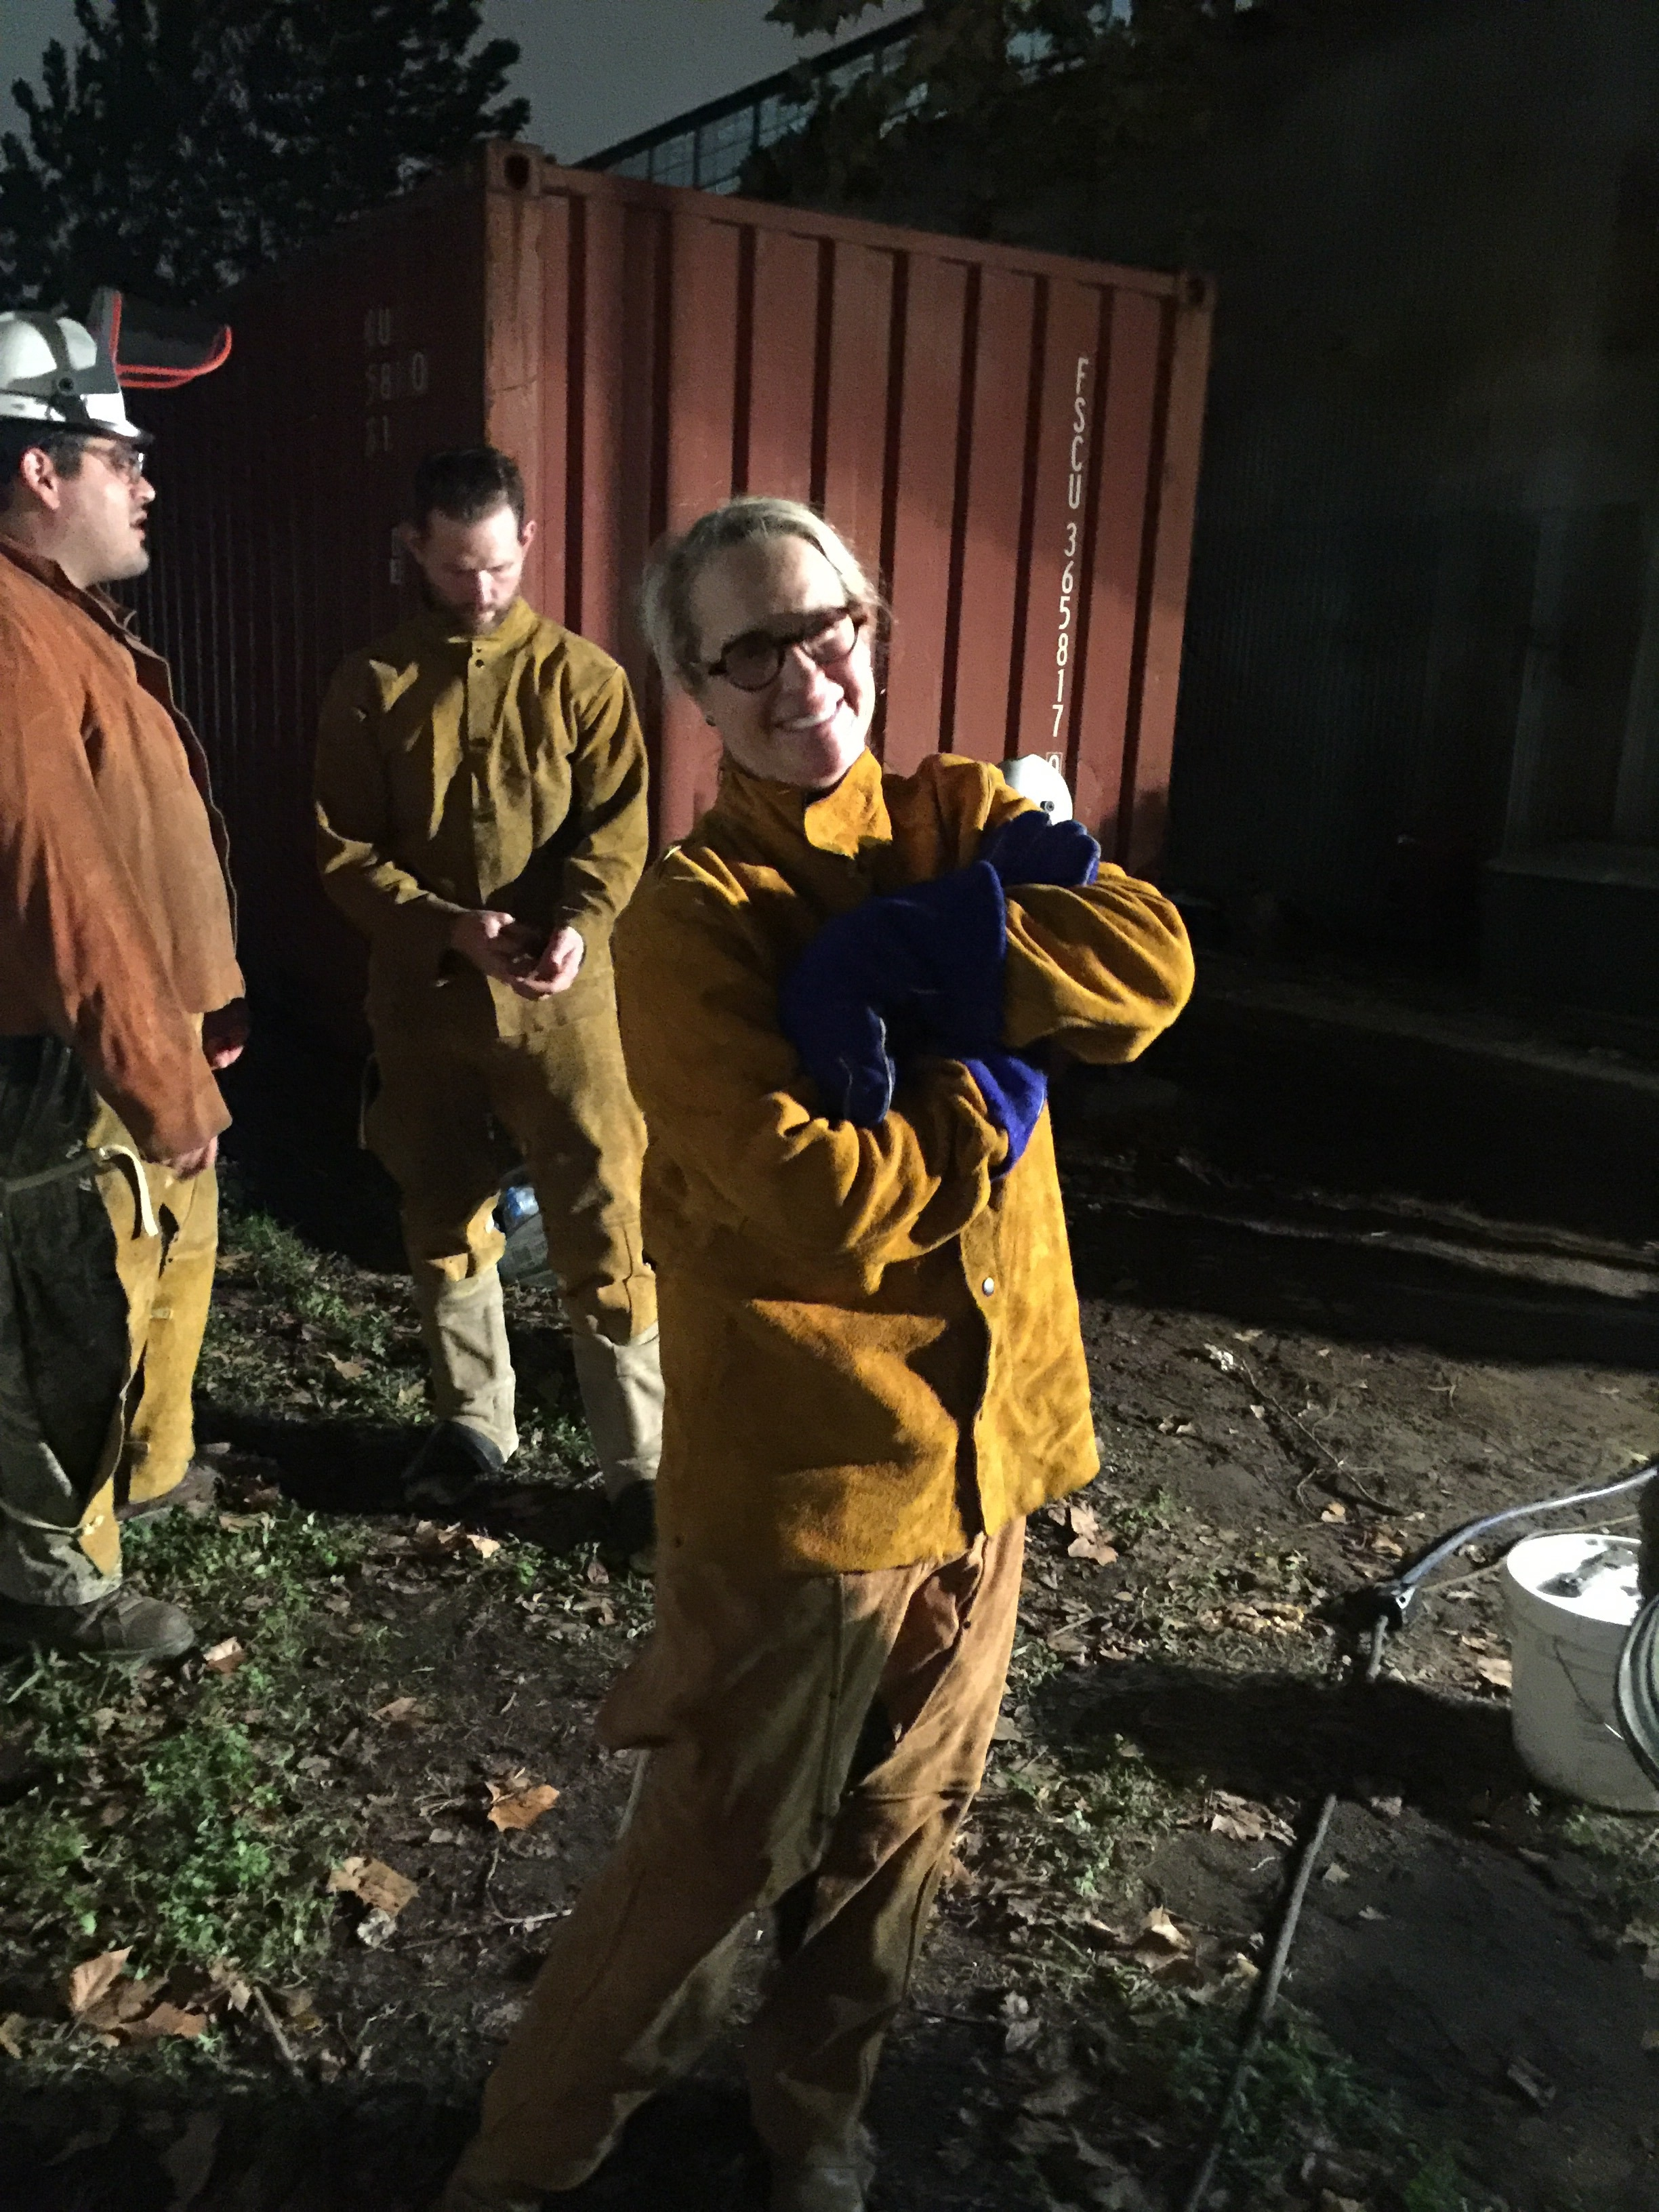 I am in all leather protective clothing. I wear two sets of welding gloves to keep from burning my hands when I hold the shells upright.